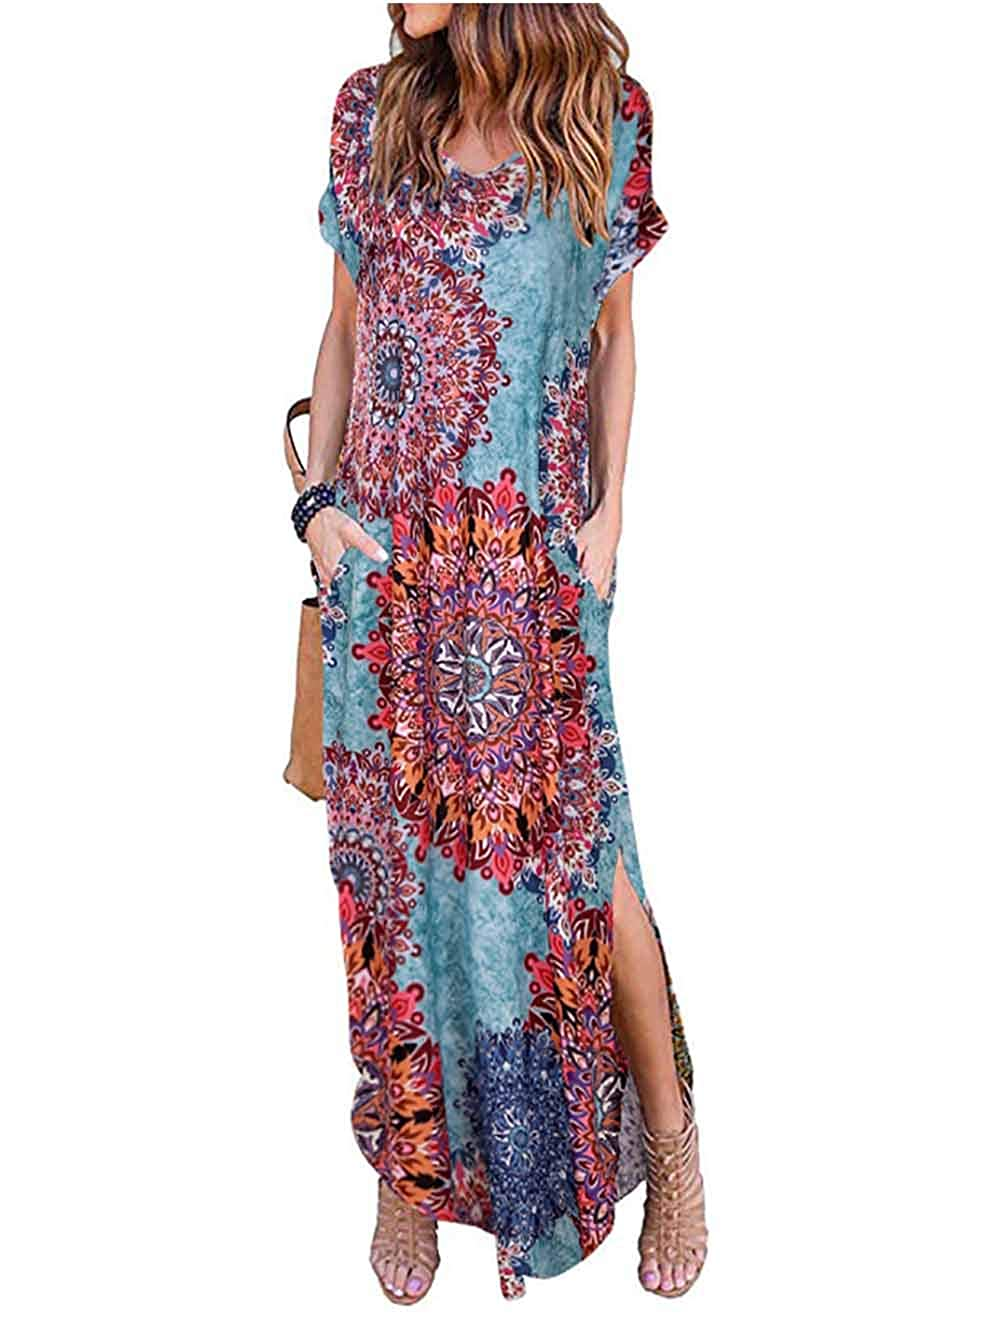 iChunhua Womens Summer Floral Split Maxi Dresses with Sleeves